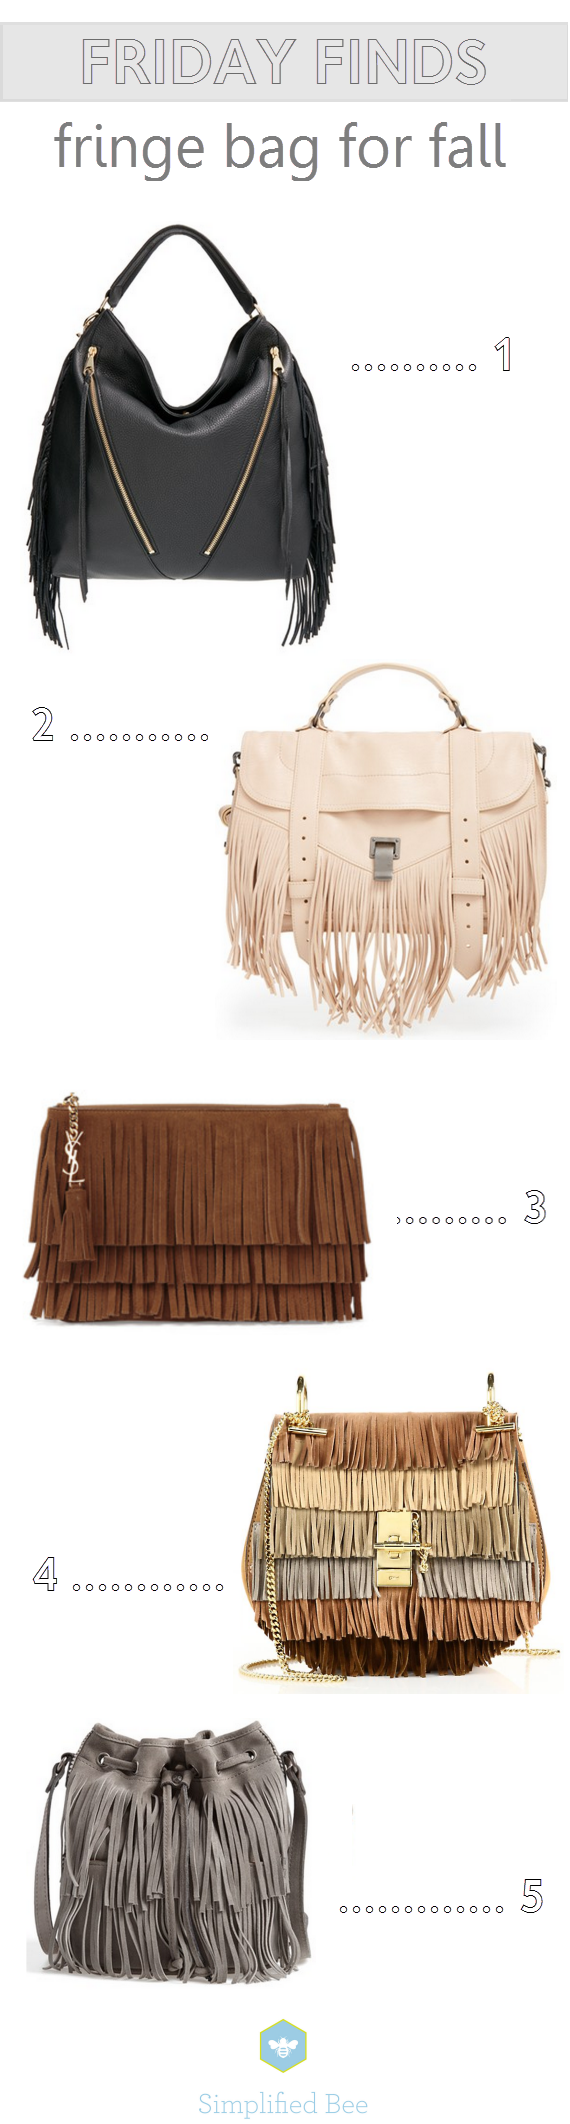 fringe bags for fall // www.simplifiedbee.com #handbags #fall